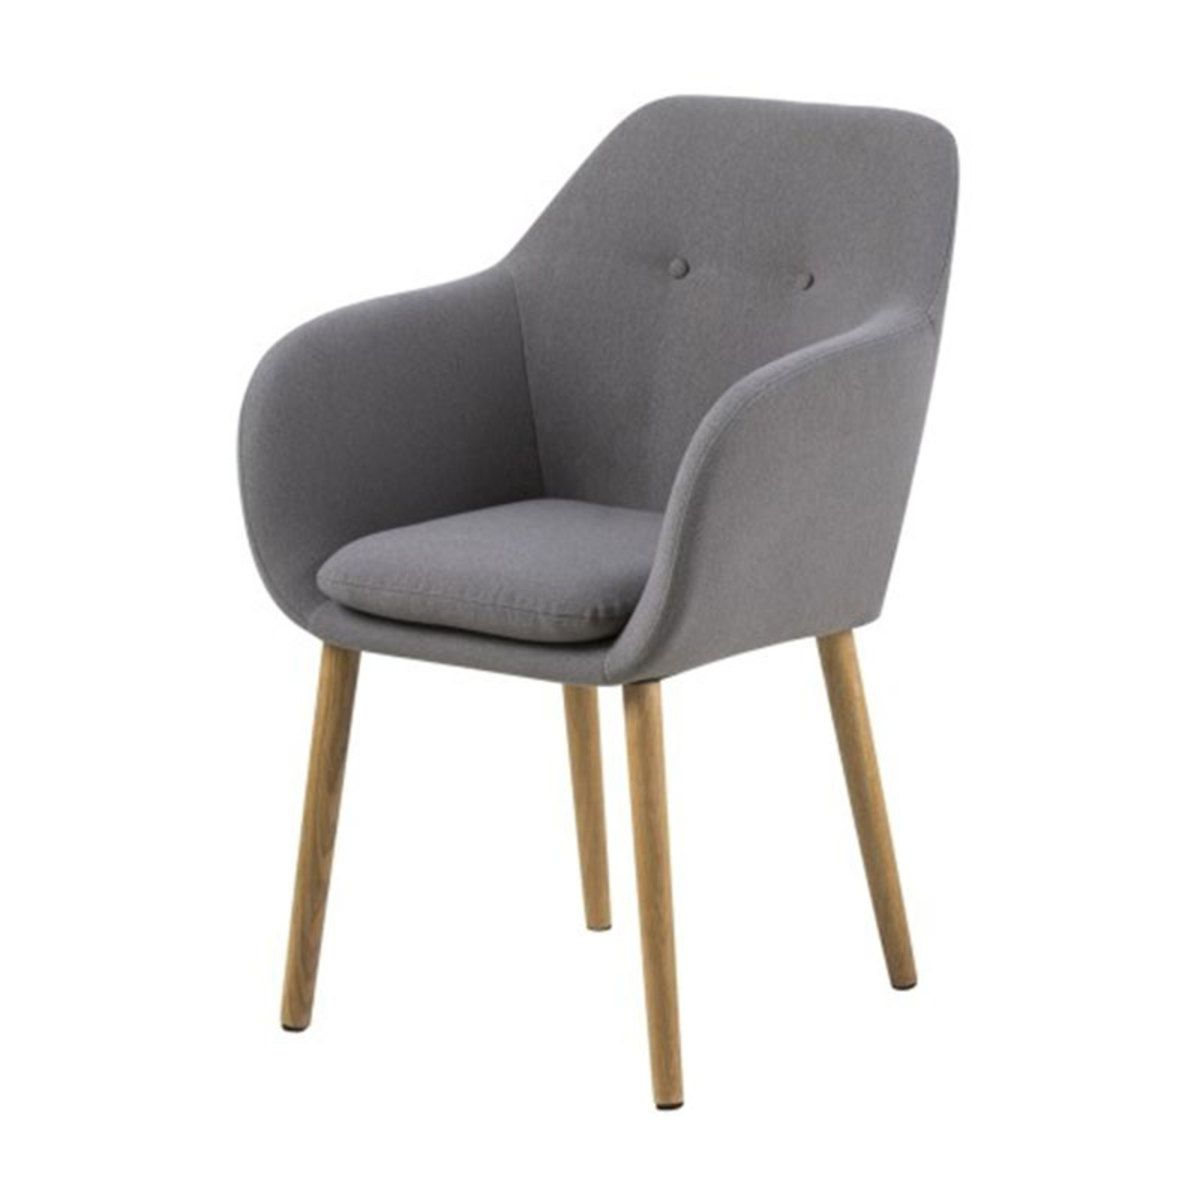 Chaise Salle A Manger Chaise Brontee Gris Clair Chaise Brontee Gris